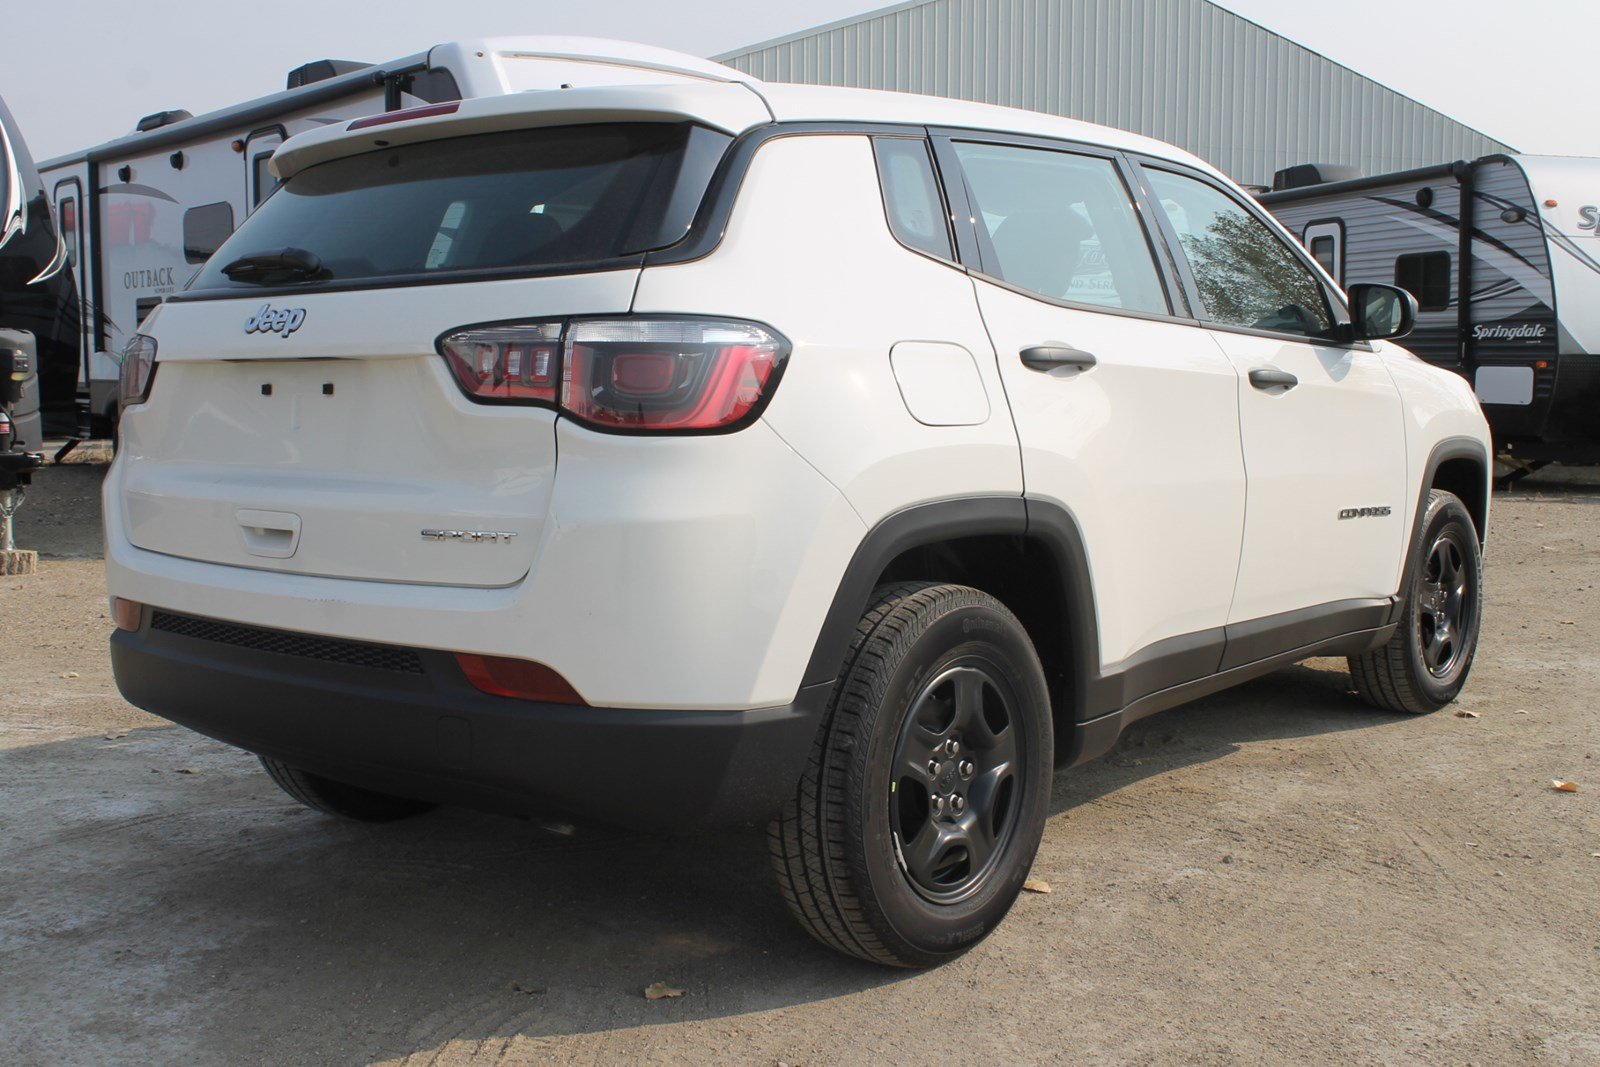 sc fort jeep sport used charlotte avail compass in ltd mill stateline